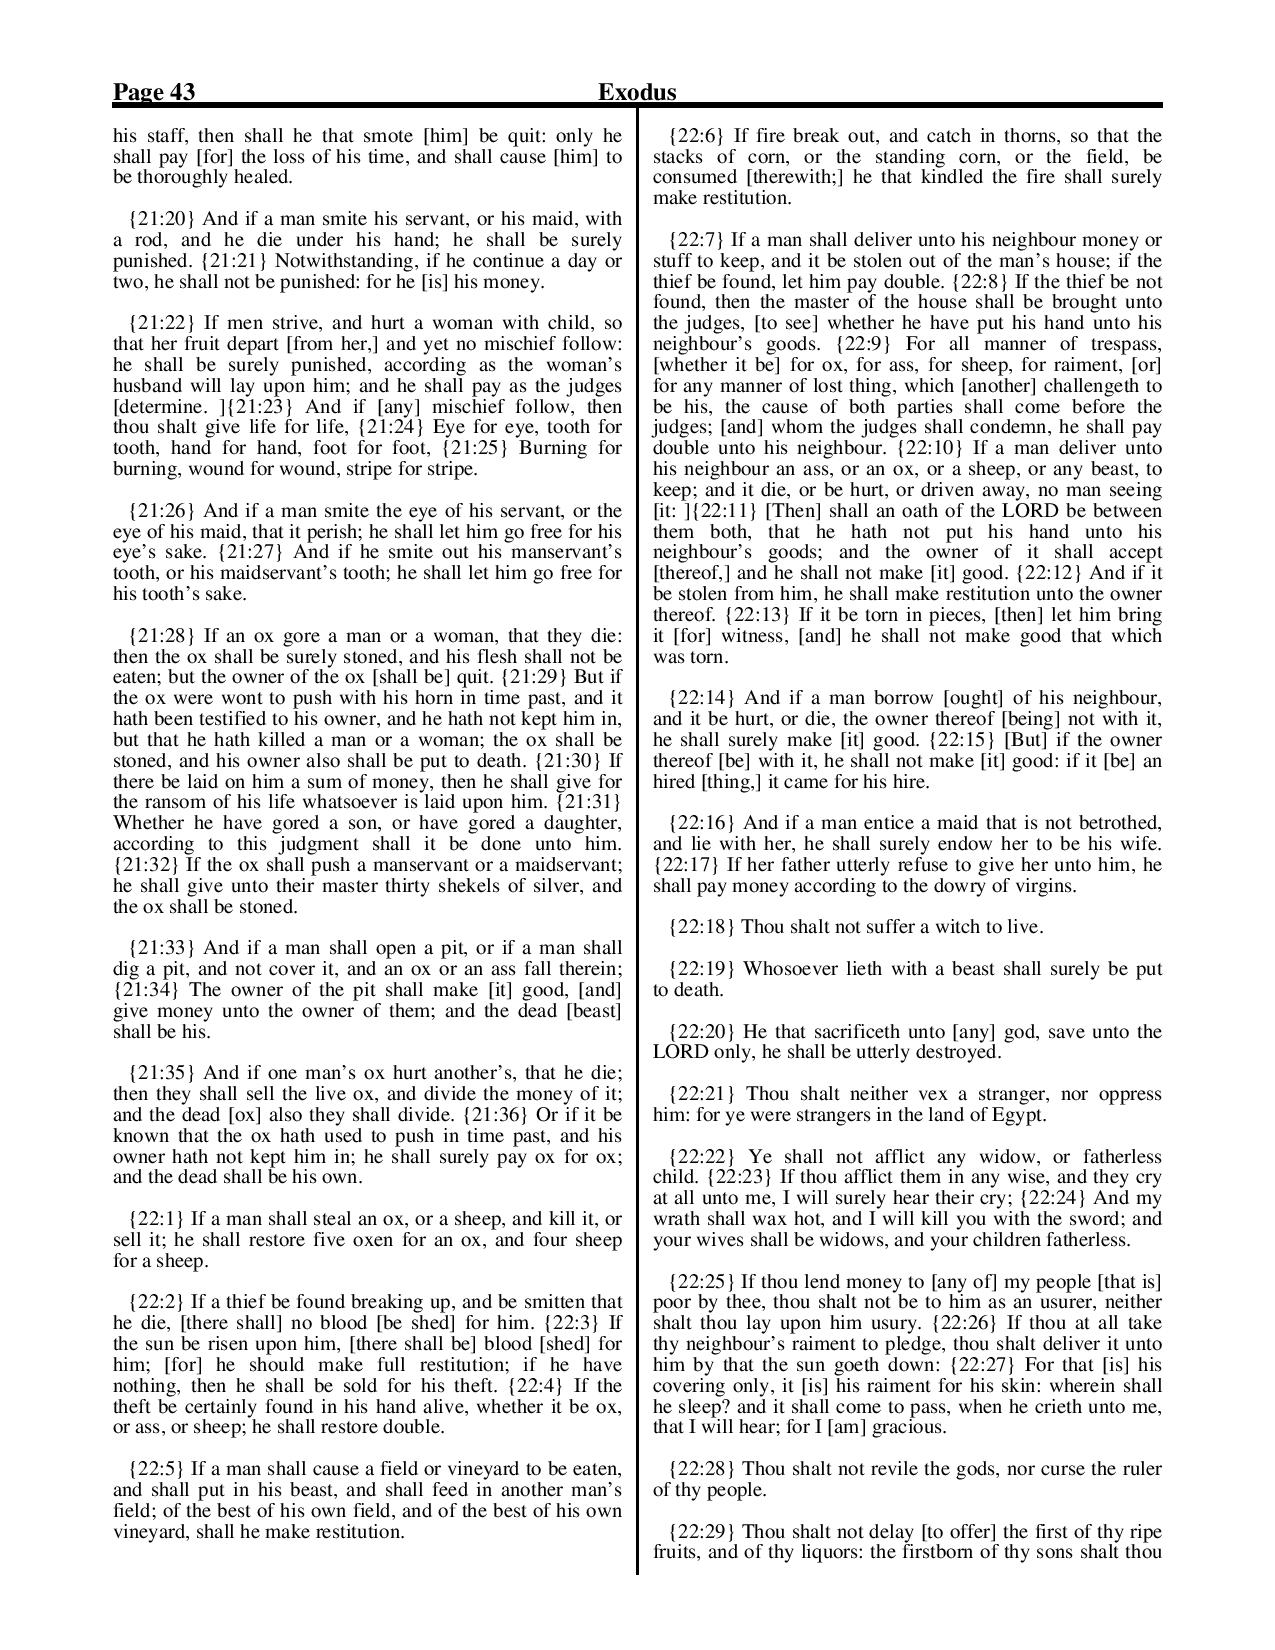 King-James-Bible-KJV-Bible-PDF-page-064